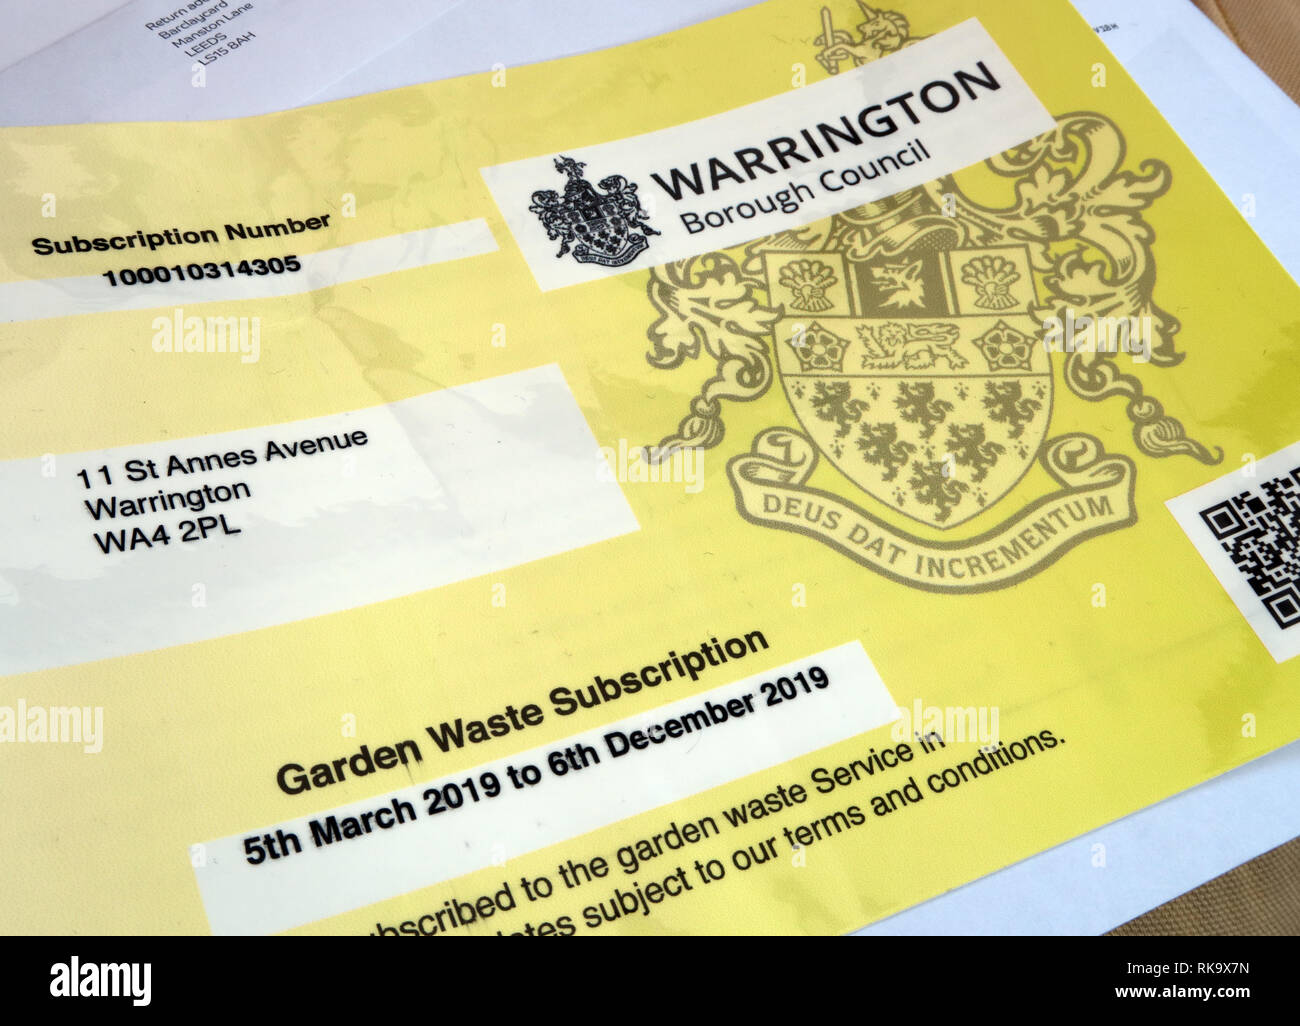 Warrington Borough Council, Garden Waste Subscription, collection of green waste charges, 2019 for Green Bin Stock Photo